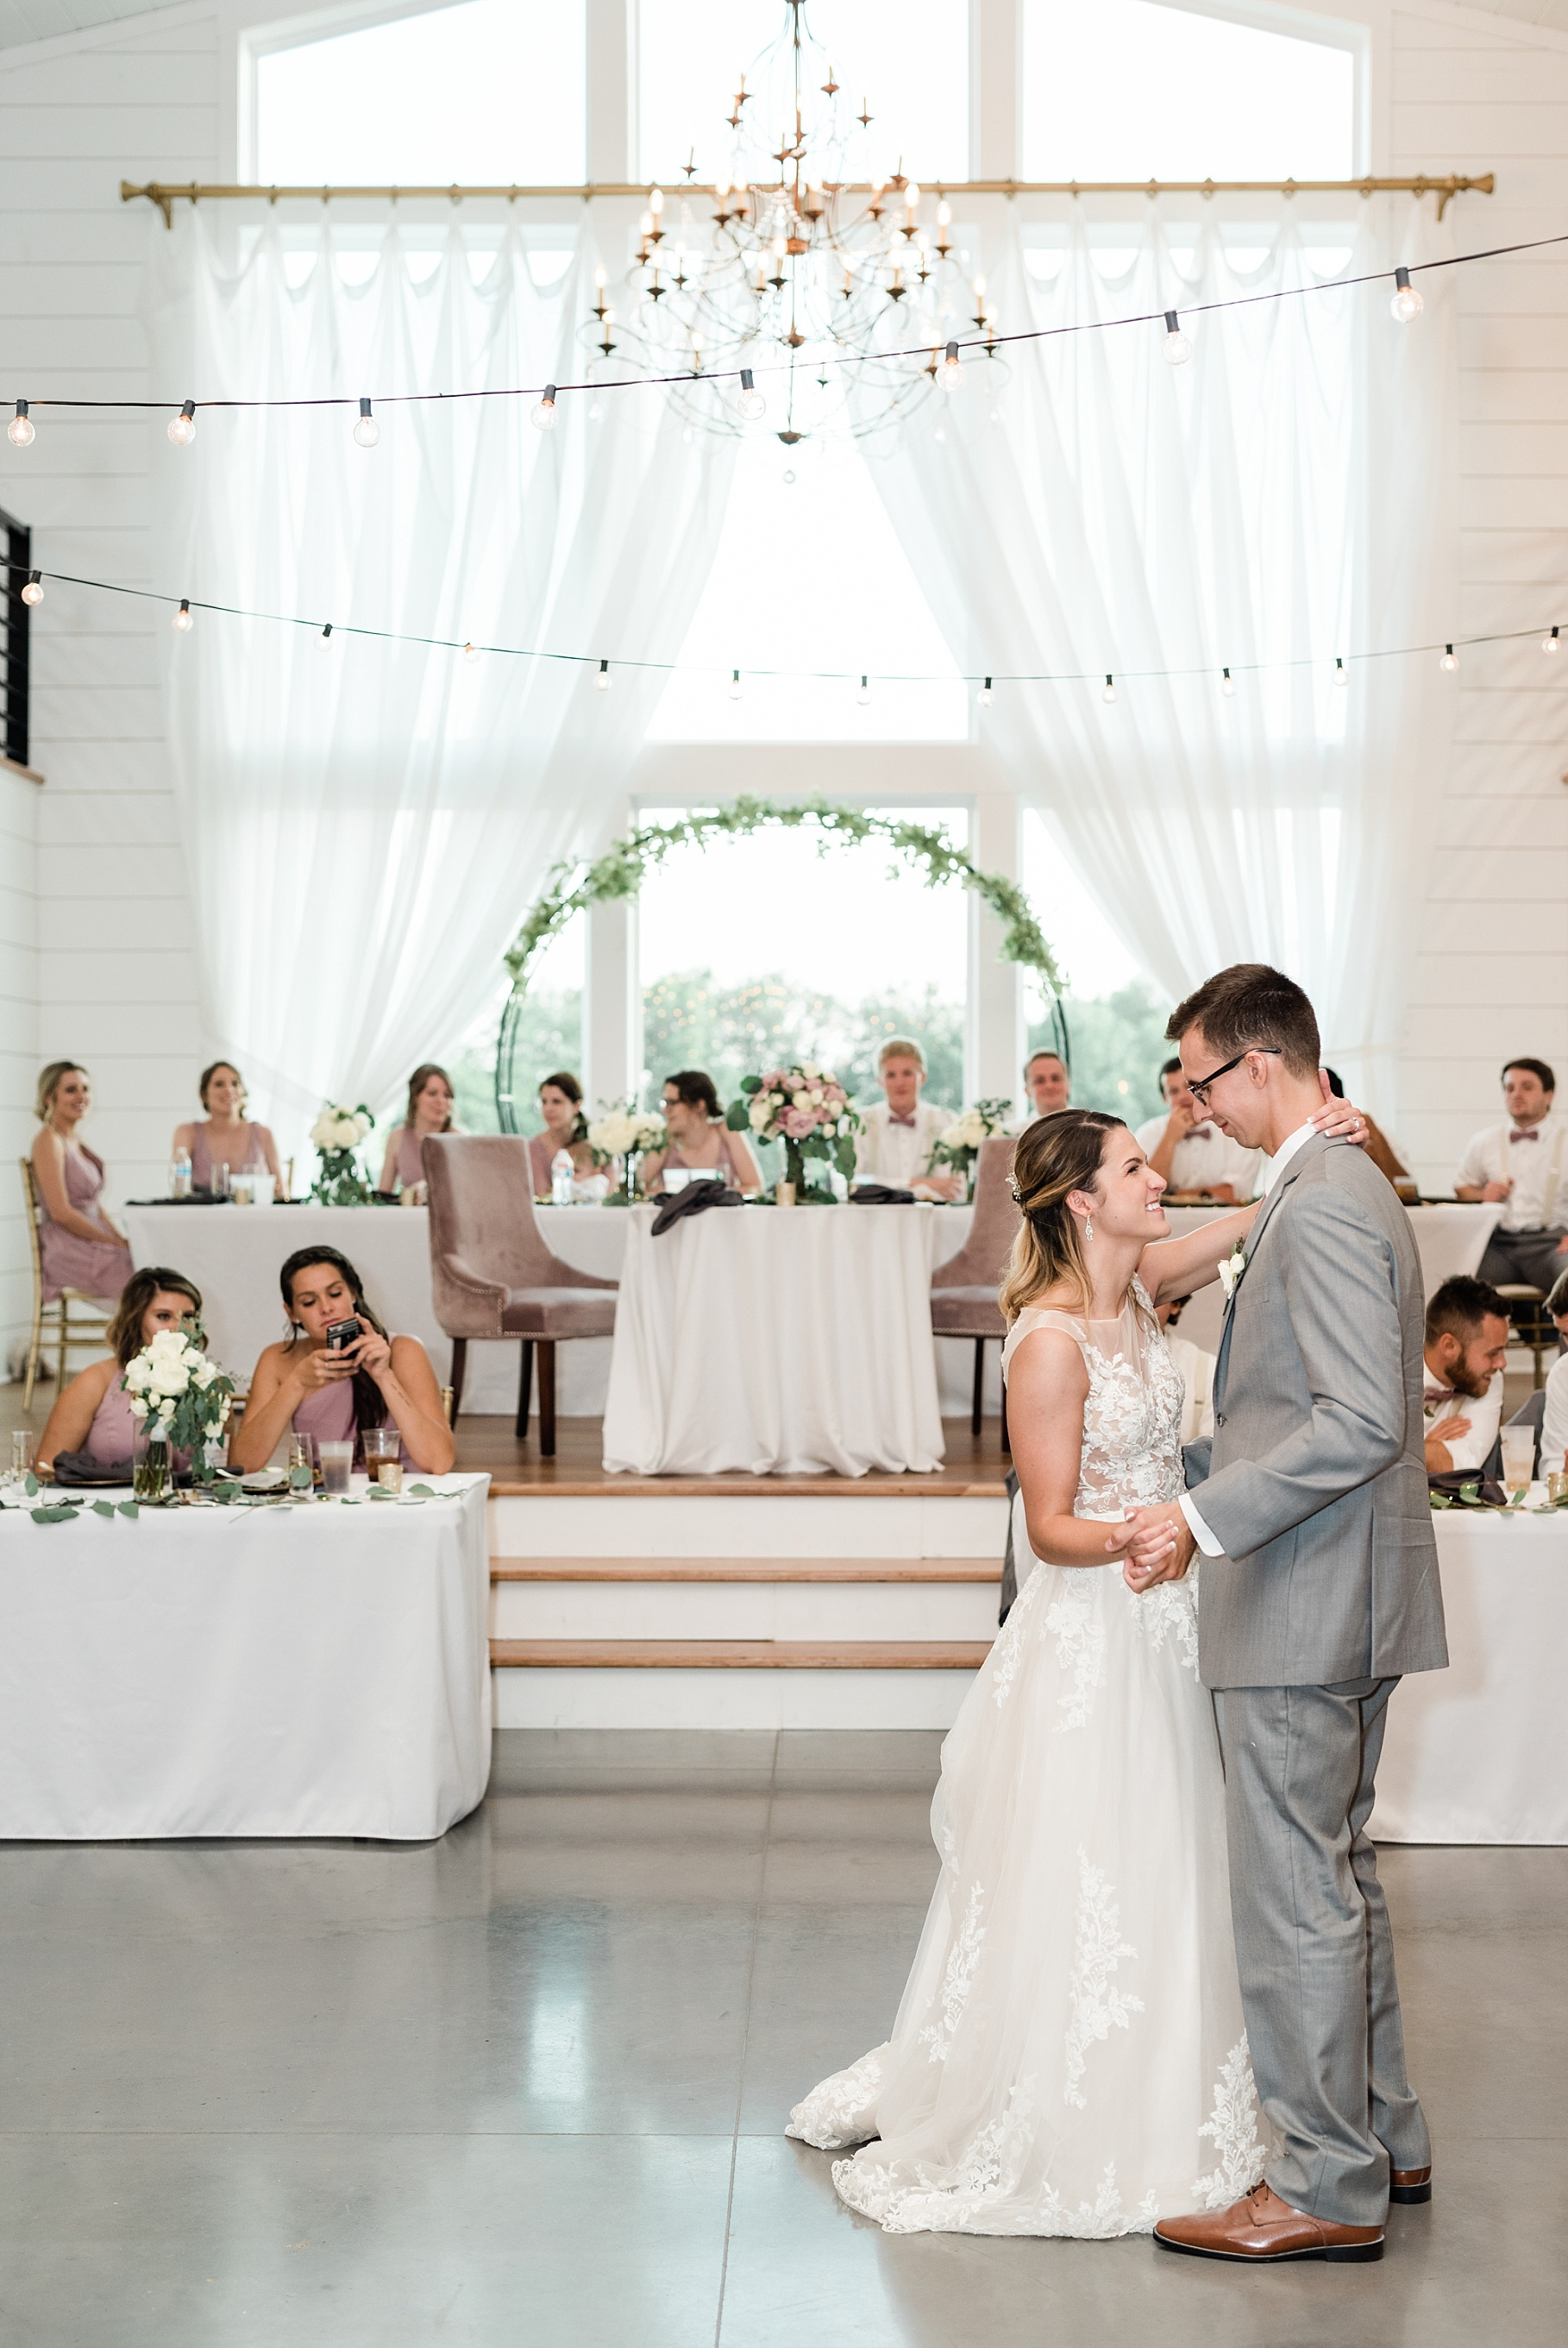 Classic Quartz, White, and Deep Green Wedding at Emerson Fields by Kelsi Kliethermes Photography Best Columbia Missouri and Maui Hawaii Wedding Photographer_0075.jpg